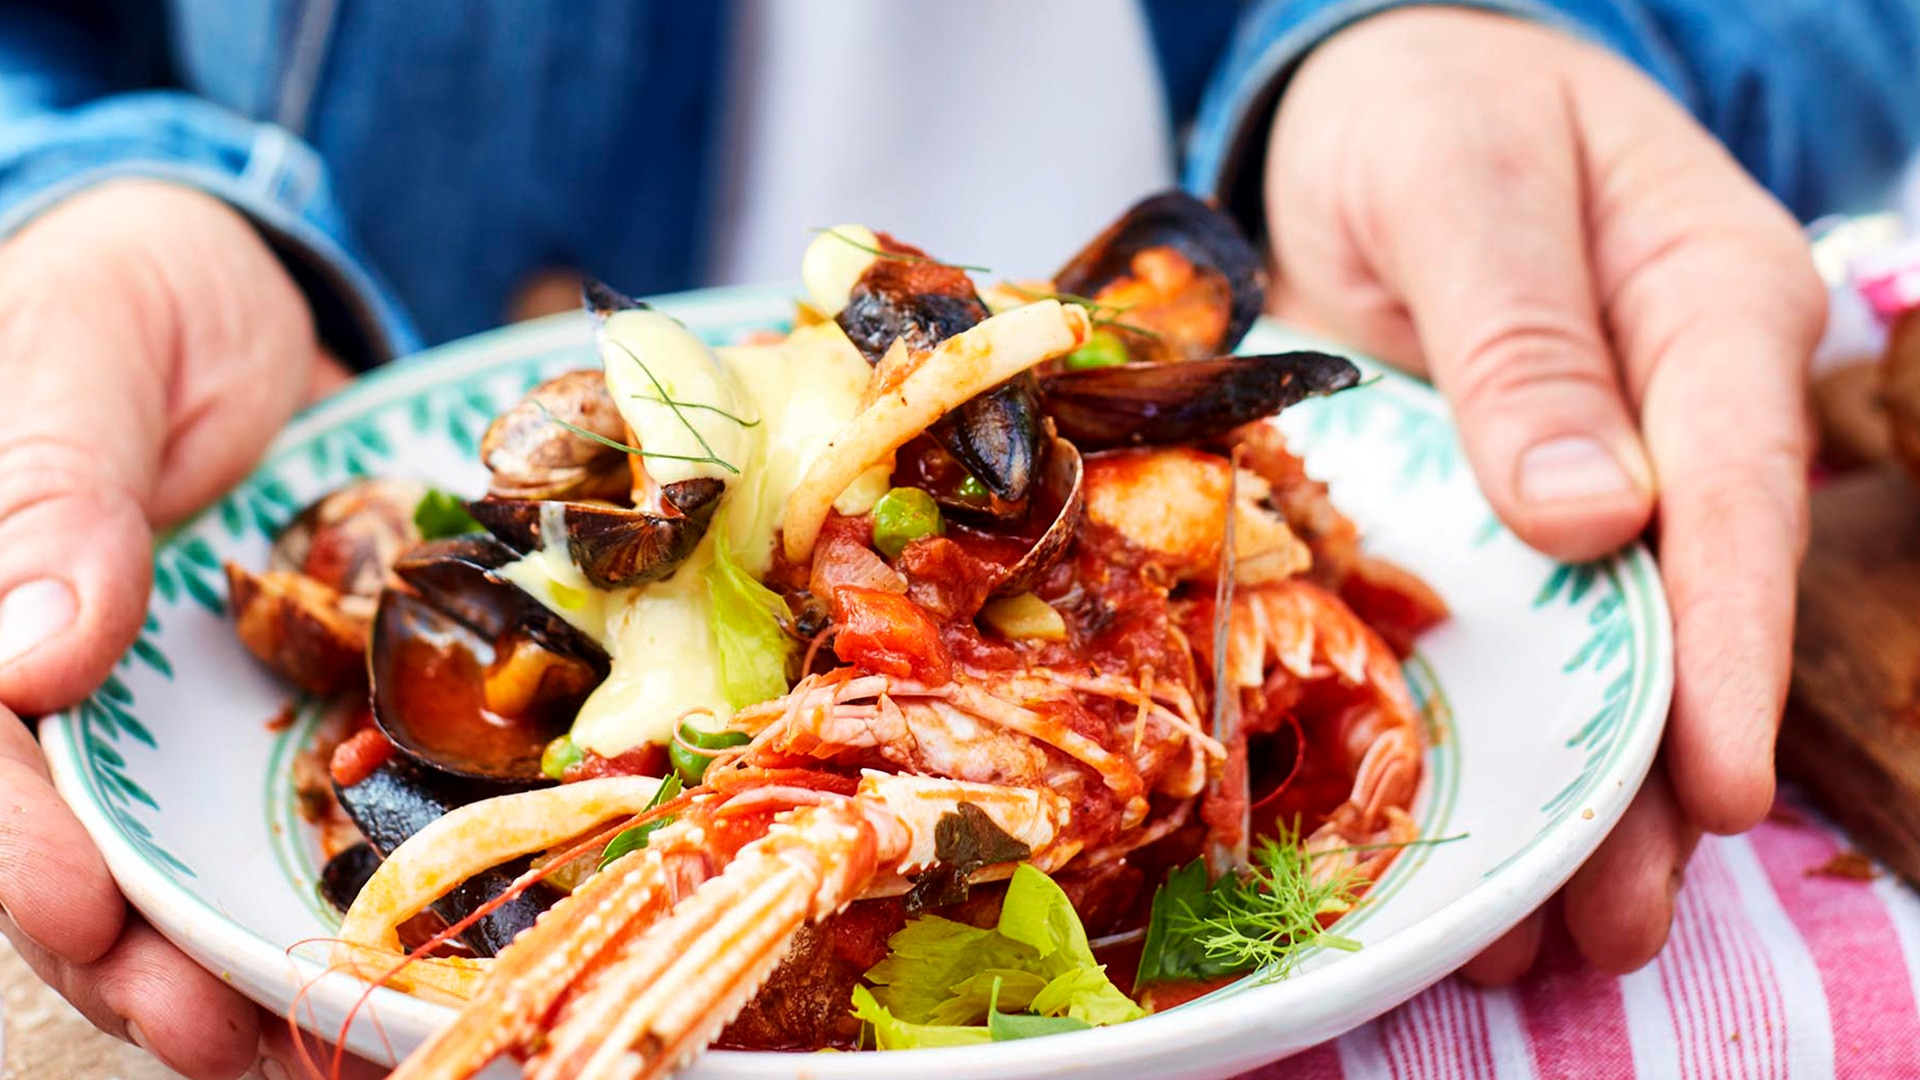 Jamie cooks italy all 4 channel 4 mon 20 aug 830pm episode 2 forumfinder Image collections